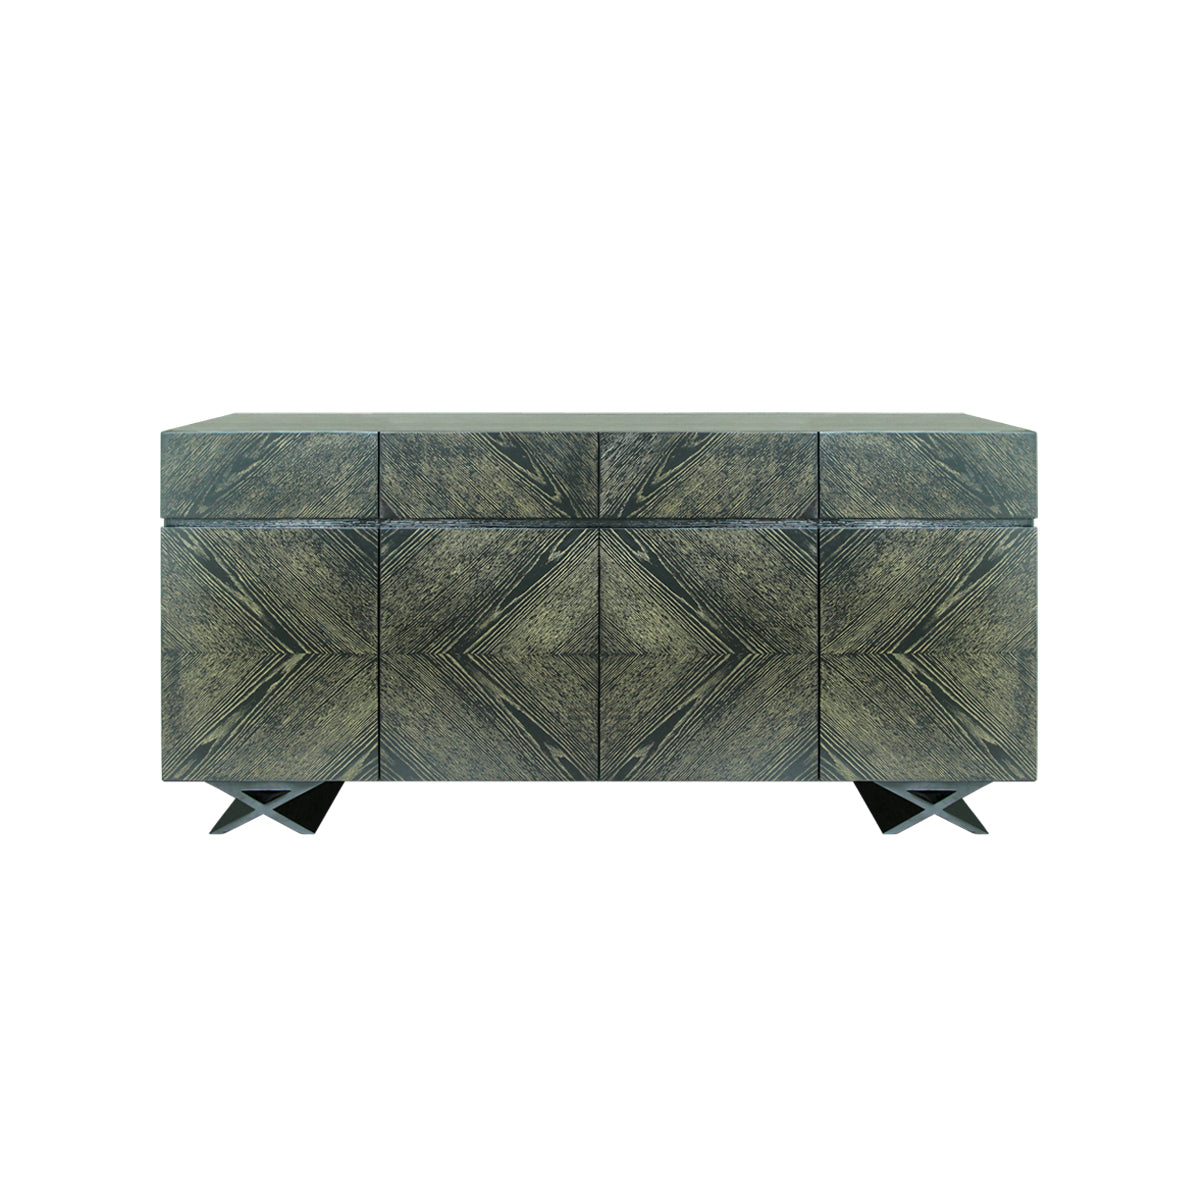 indonesian furniture online -Vesper sideboard with x shaped legs